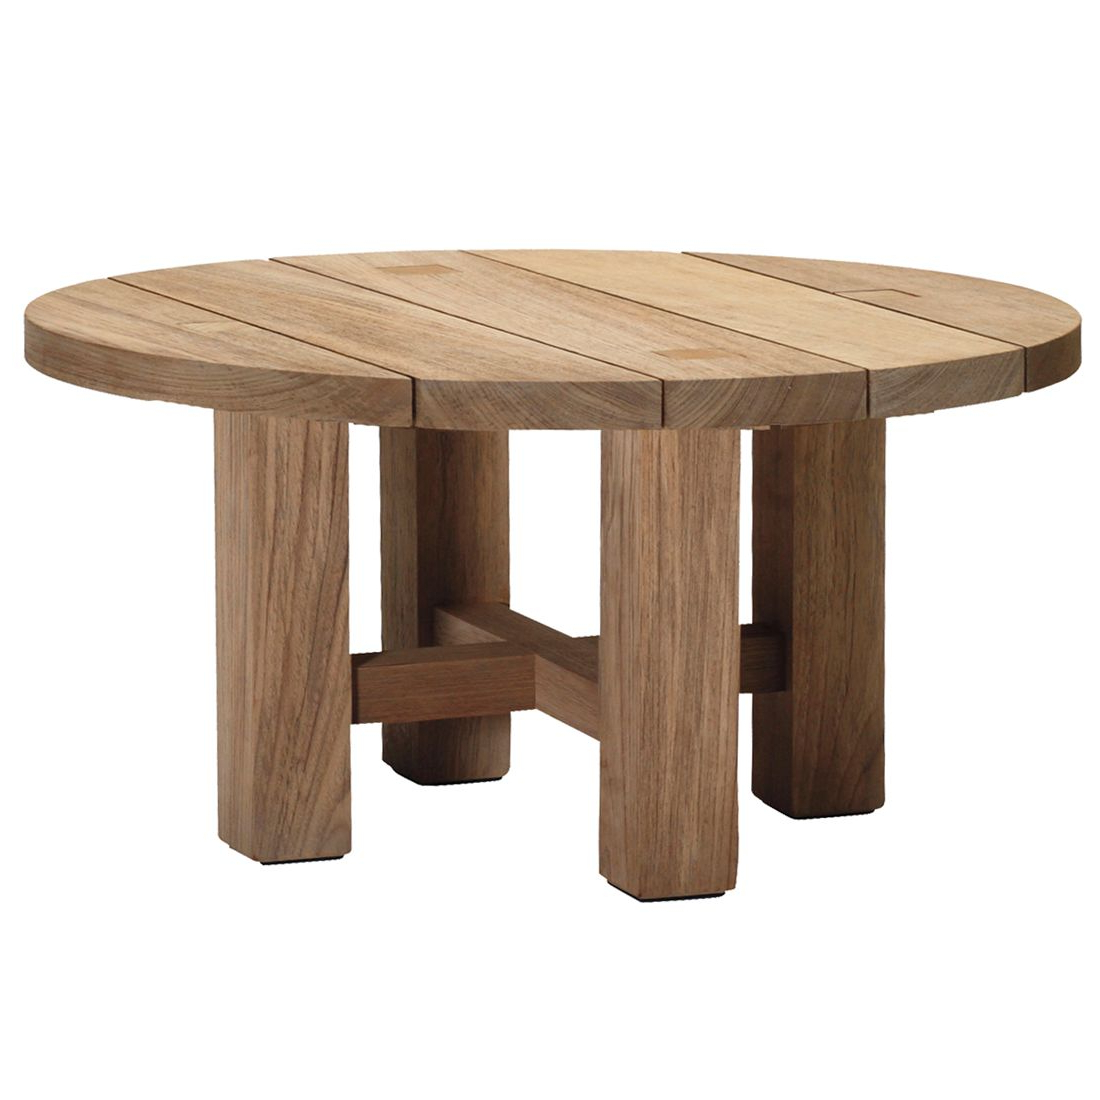 Croquet Outdoor Teak Coffee Table Within Trendy Round Teak Coffee Tables (View 4 of 20)